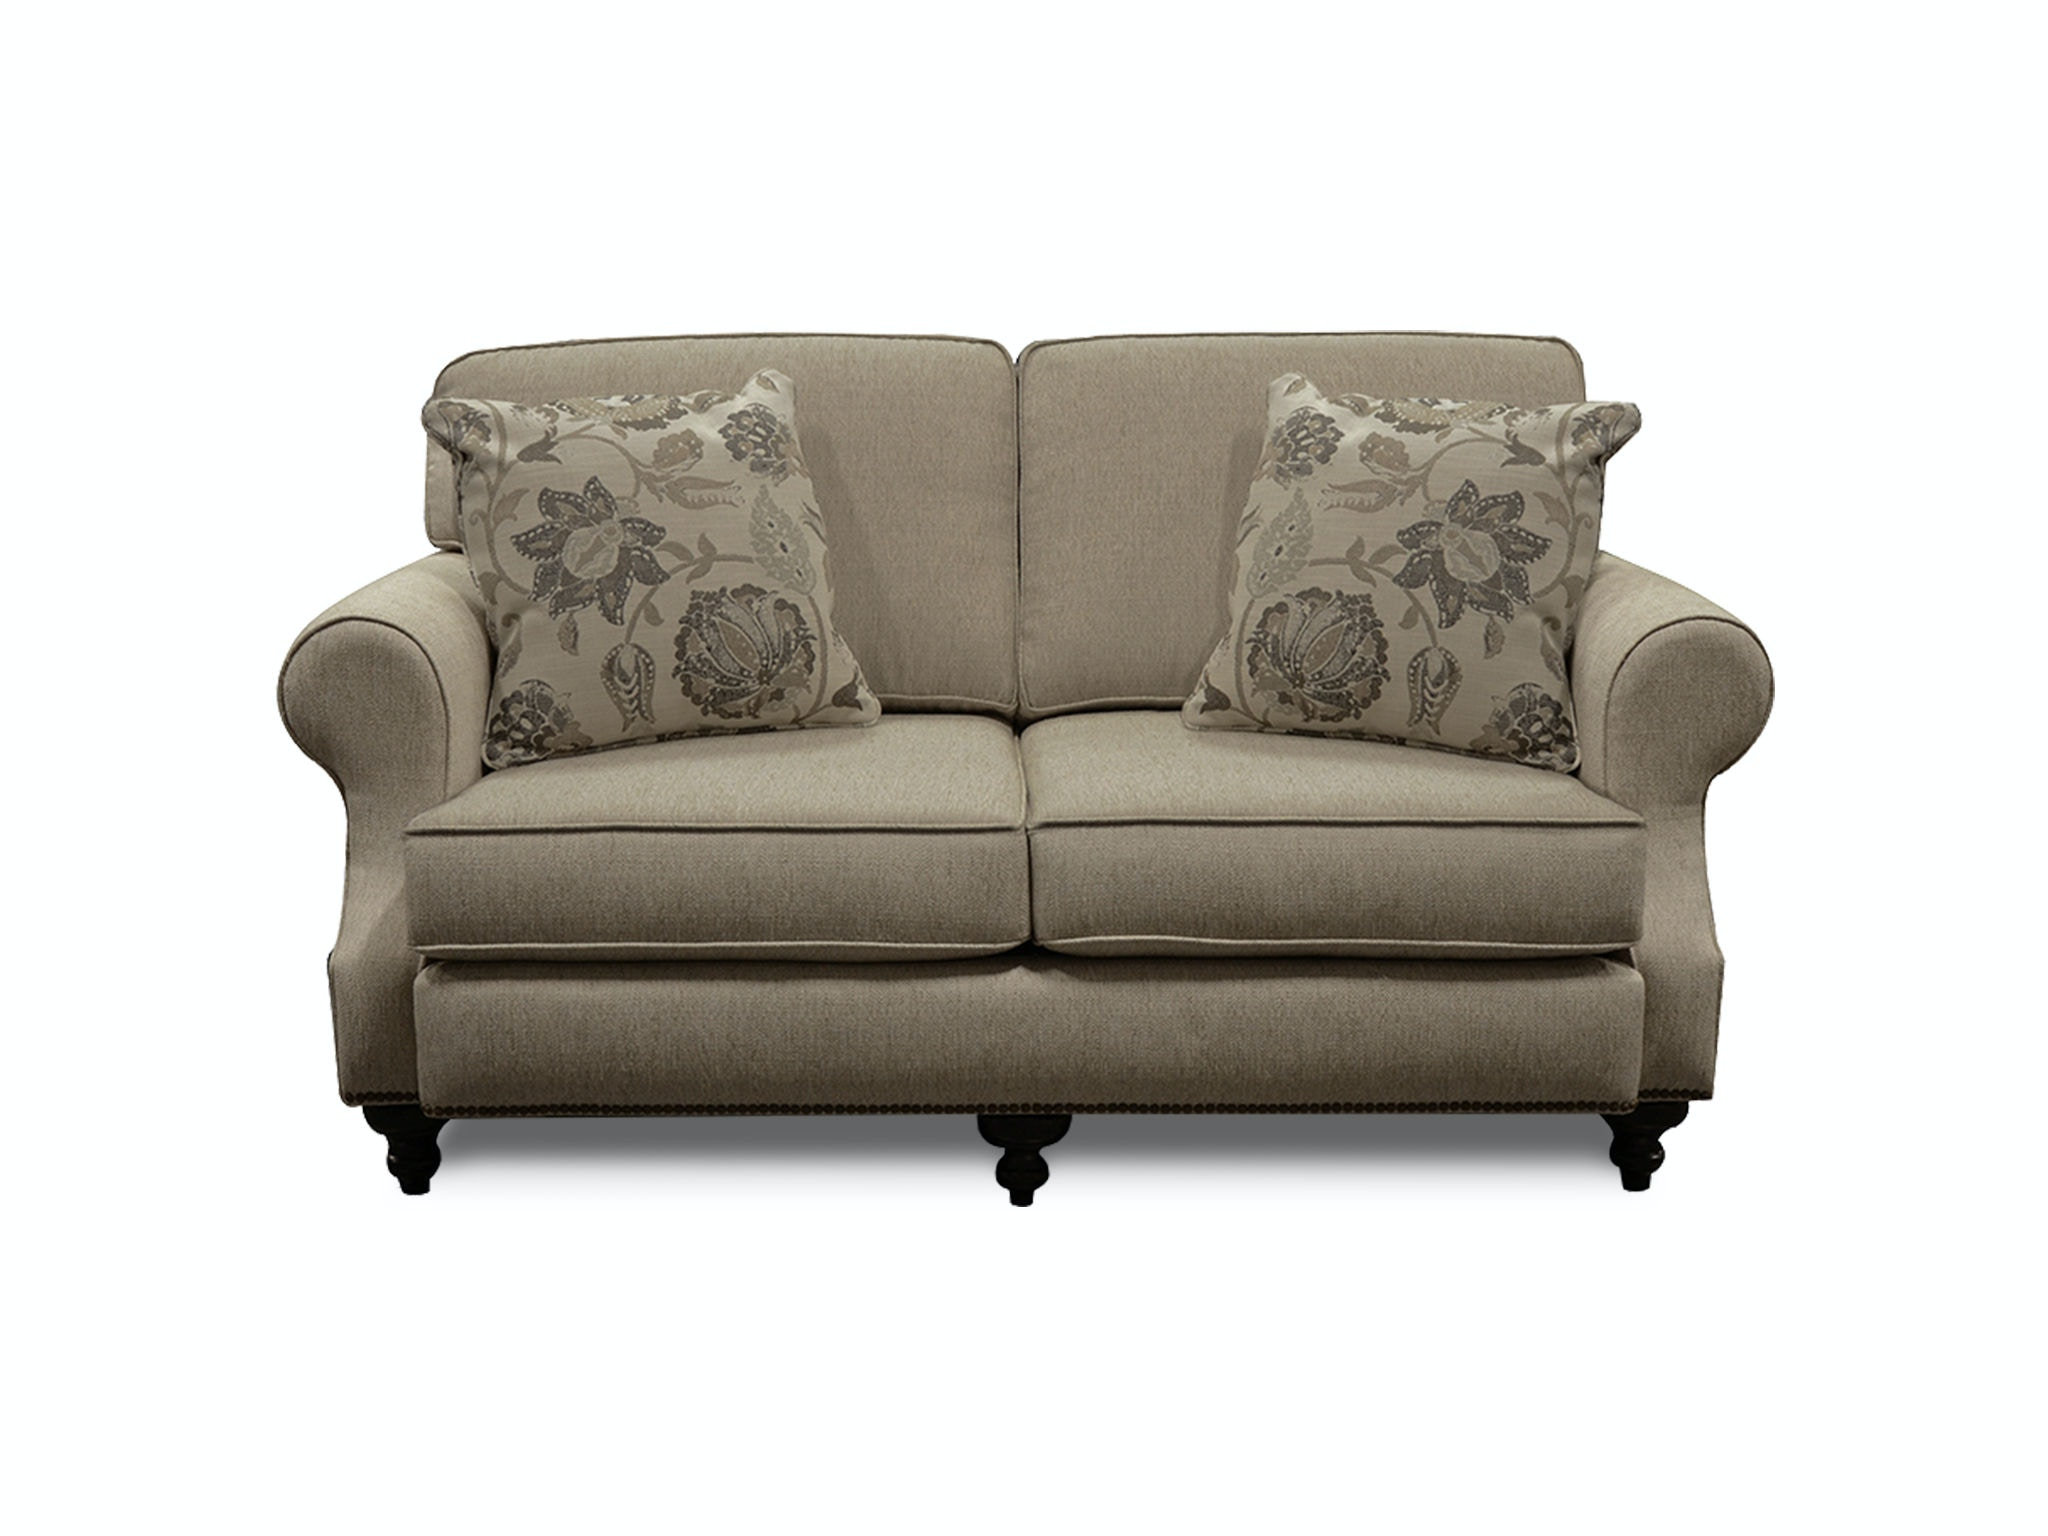 England Living Room Layla Loveseat With Nails 5m06n England